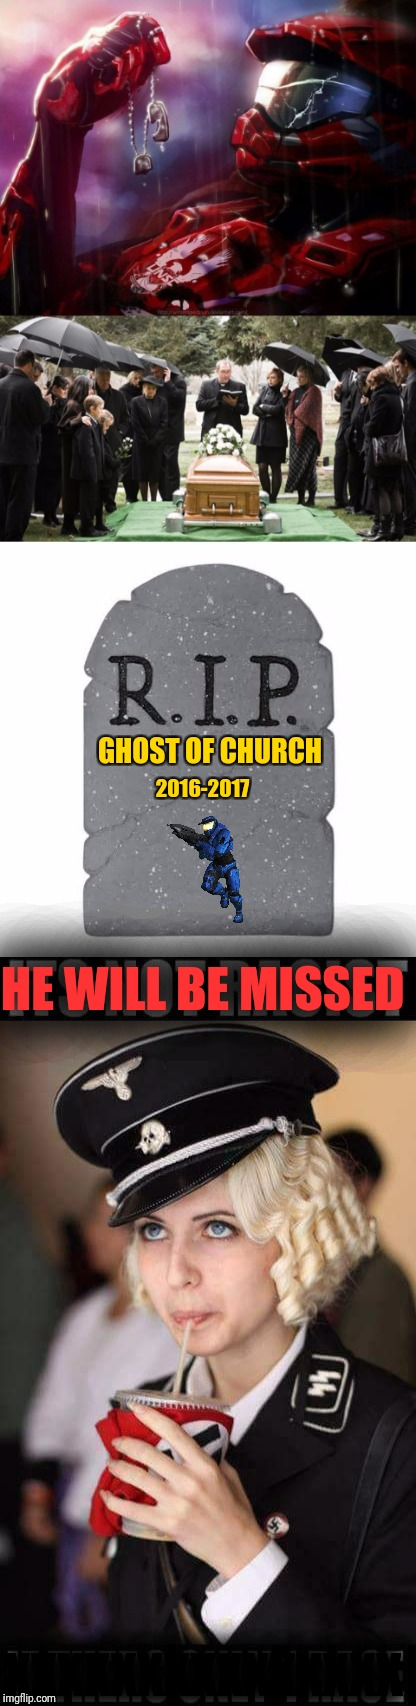 They Say the Good Die Young | GHOST OF CHURCH 2016-2017 HE WILL BE MISSED XXXXXXXXXXXXXXX | image tagged in ghostofchurch,memes,natalie_vance,funeral,halo,tombstone rip | made w/ Imgflip meme maker